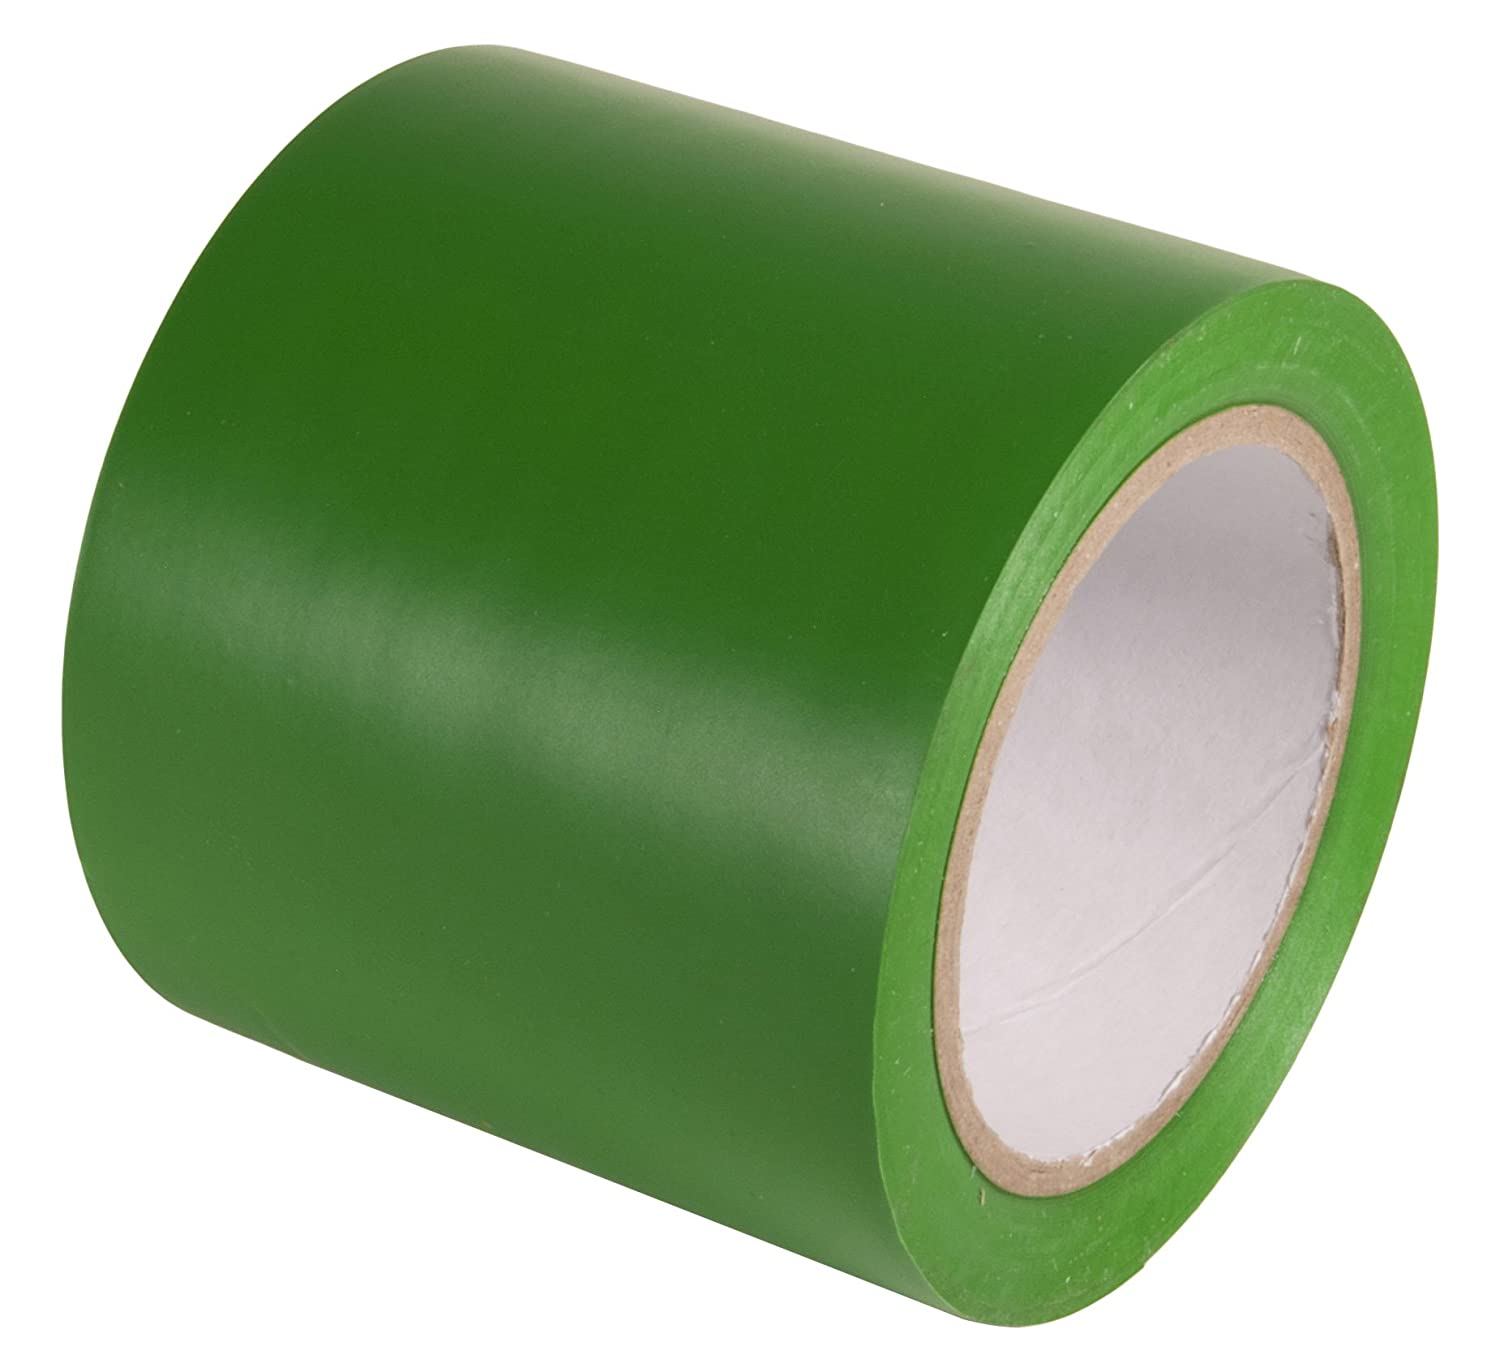 Floors Safety Green- Ideal for Walls Equipment 2 x 108 INCOM Manufacturing: Vinyl Aisle Marking Conformable Tape